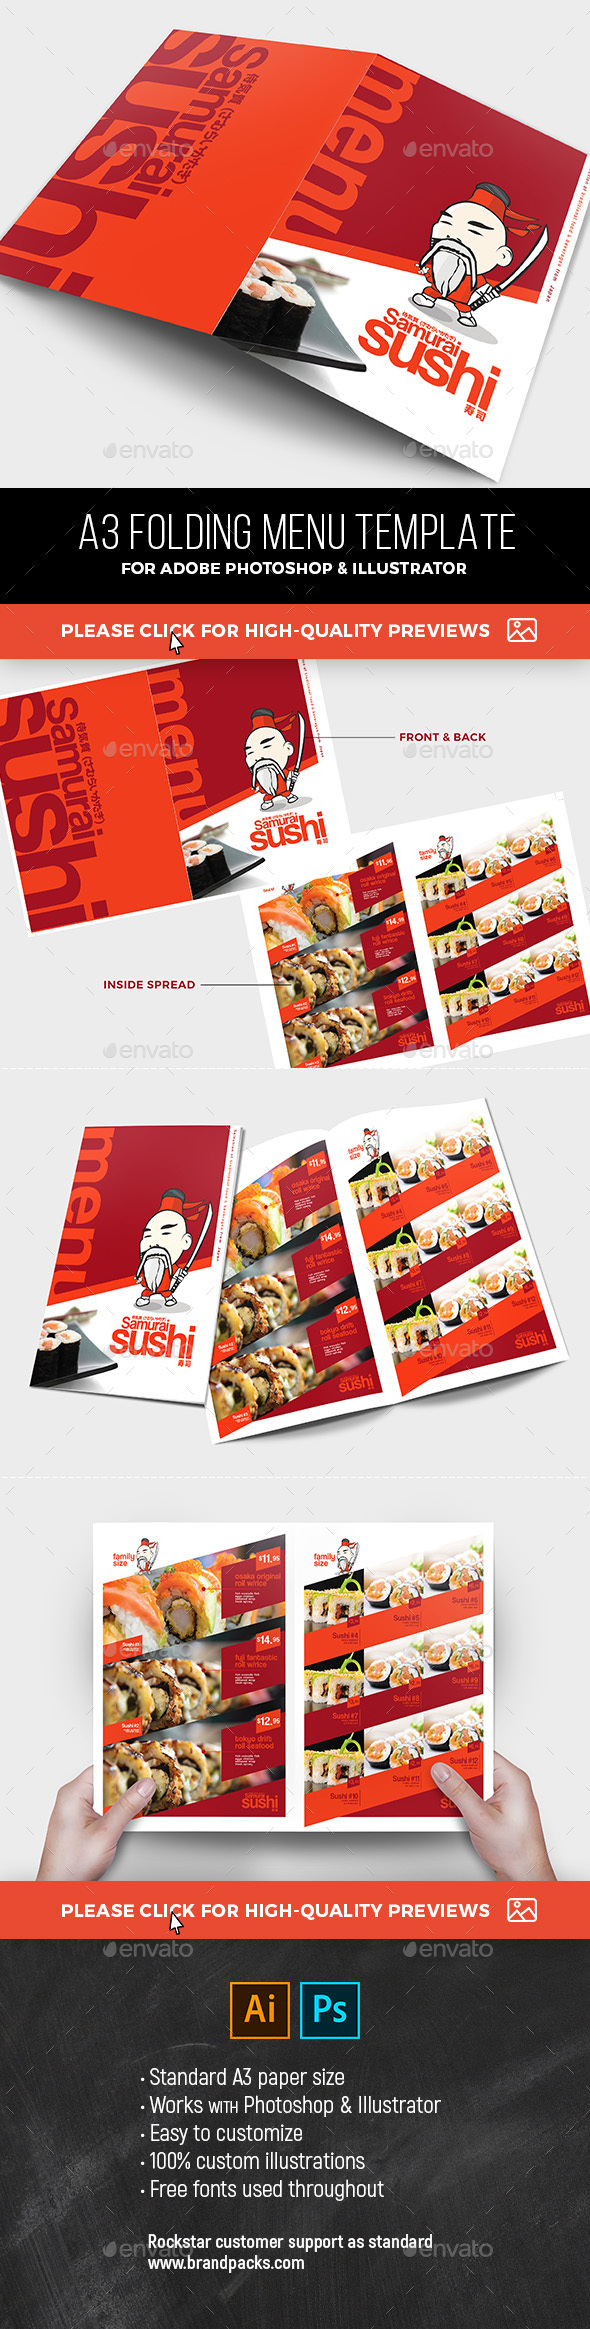 A3 Sushi Menu Template - Food Menus Print Templates